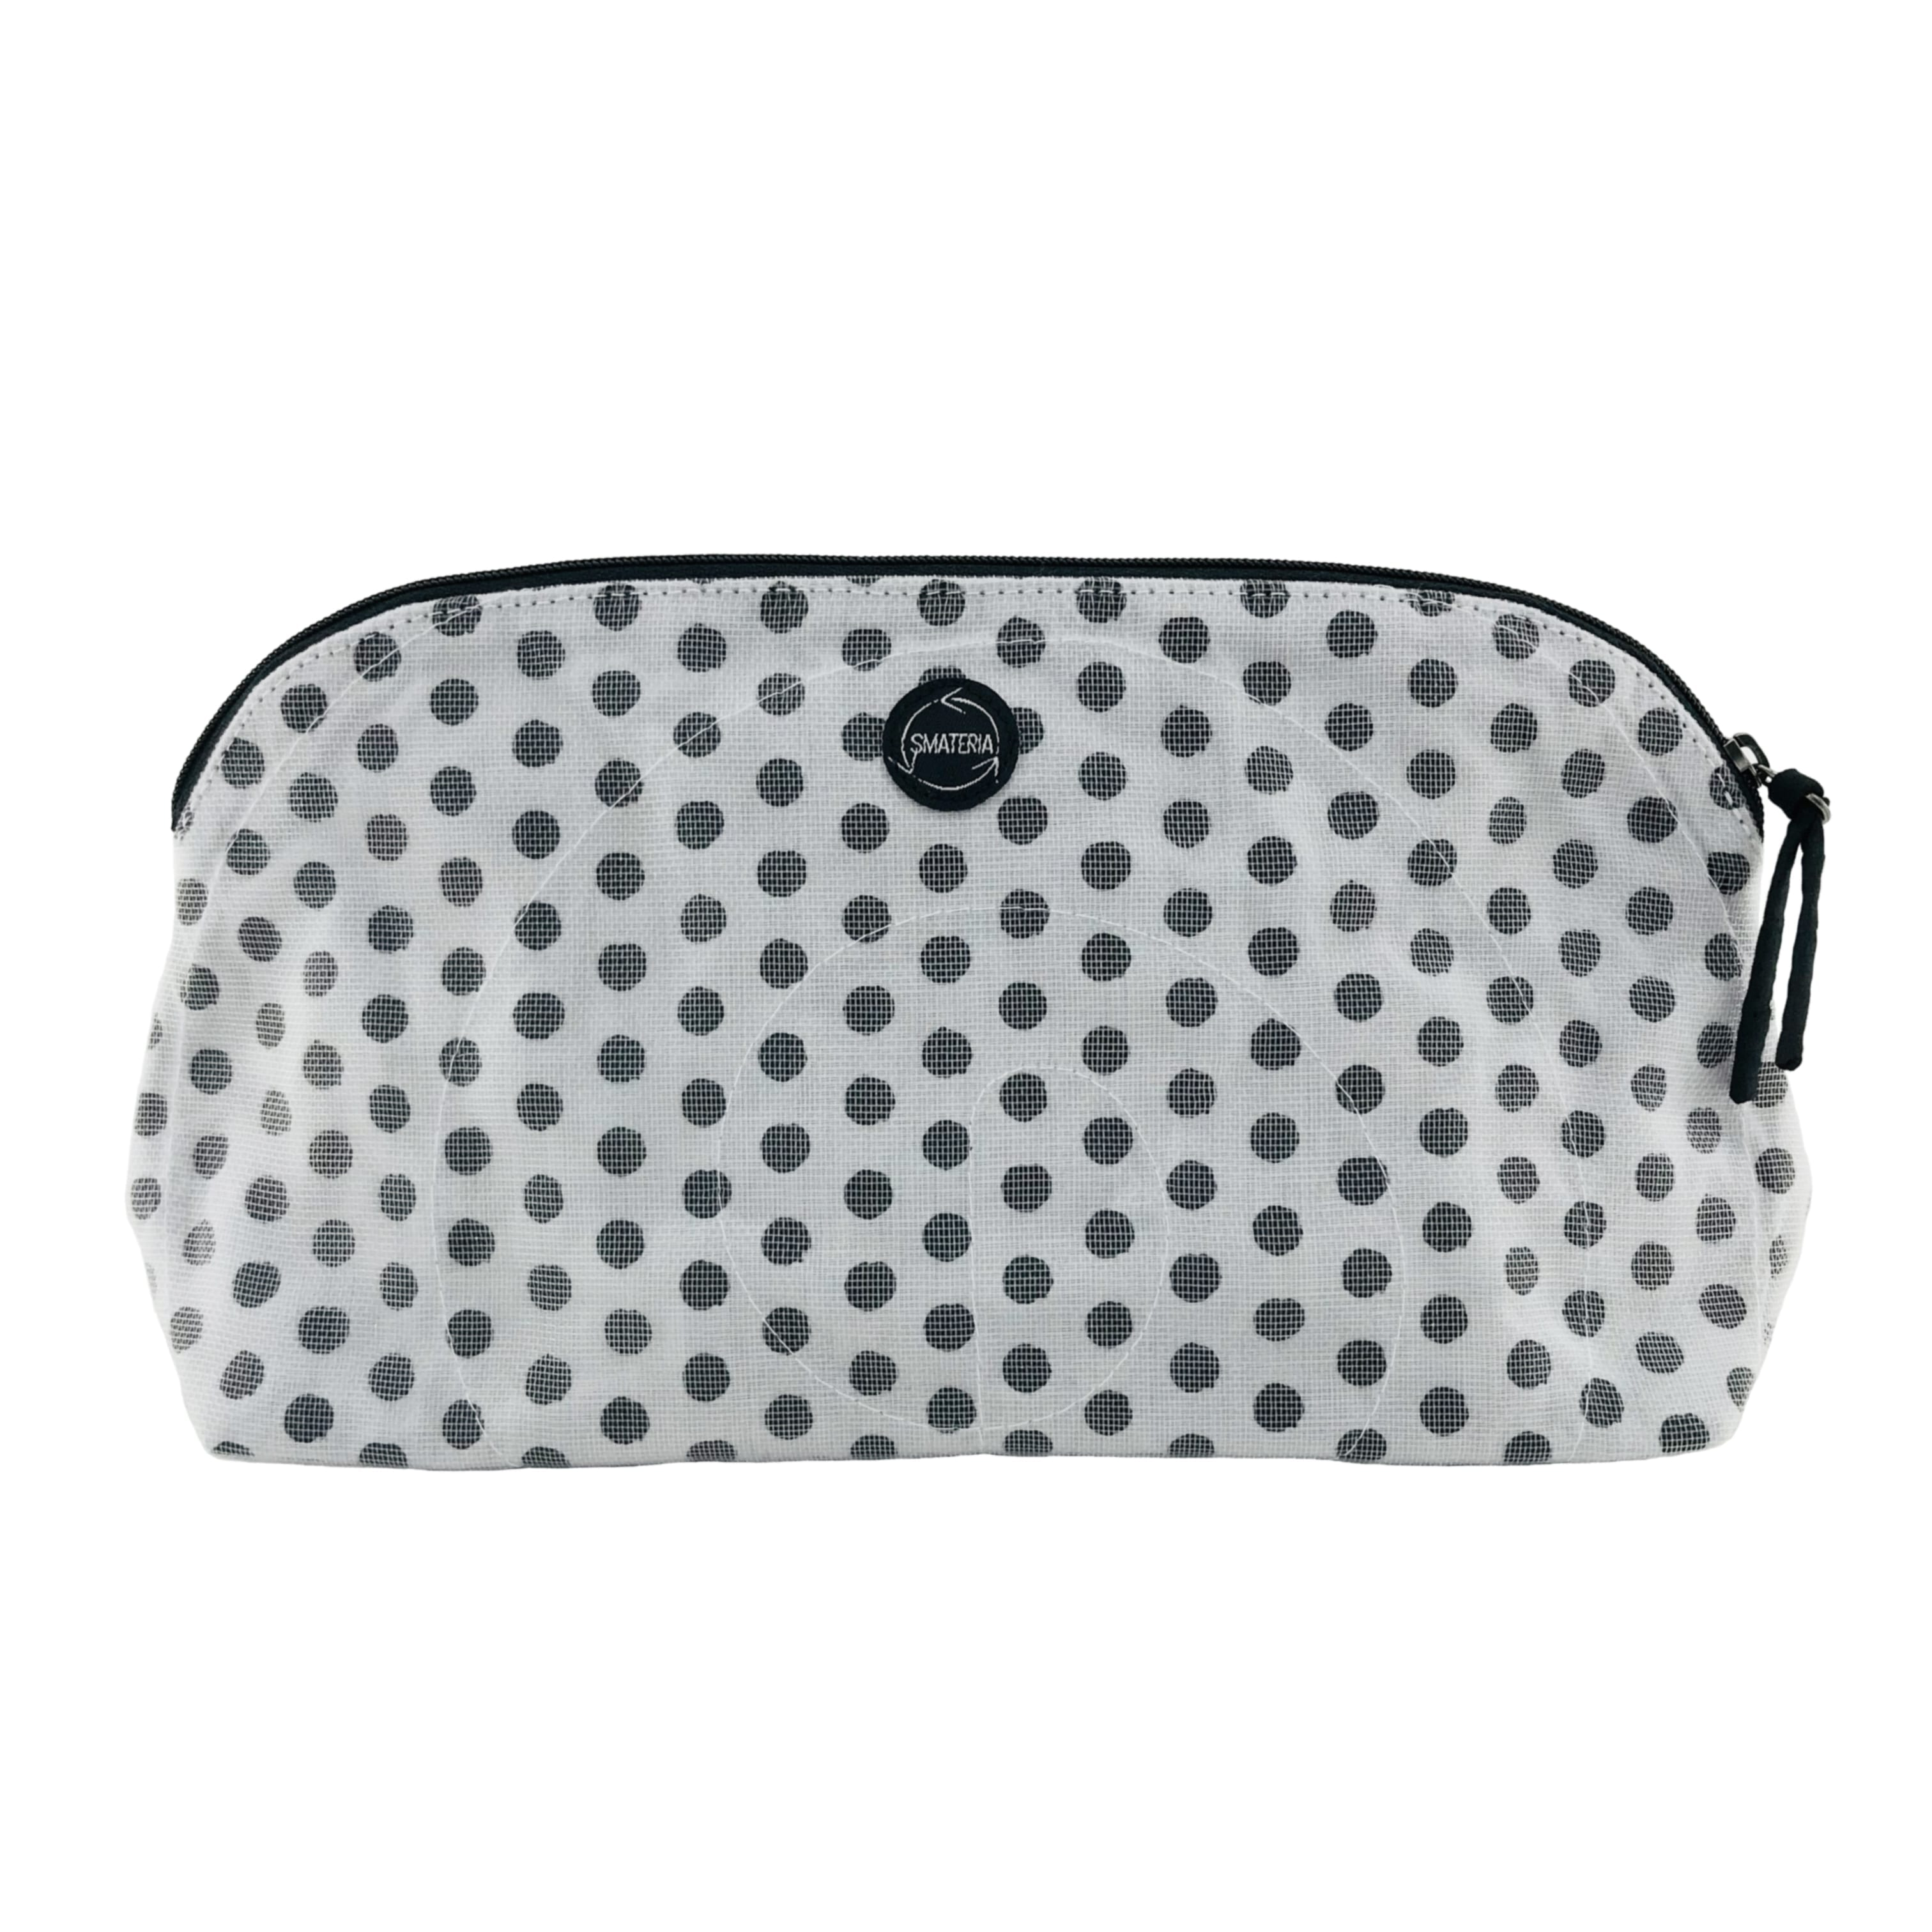 La Trousse de maquillage - Grand - Pois noirs